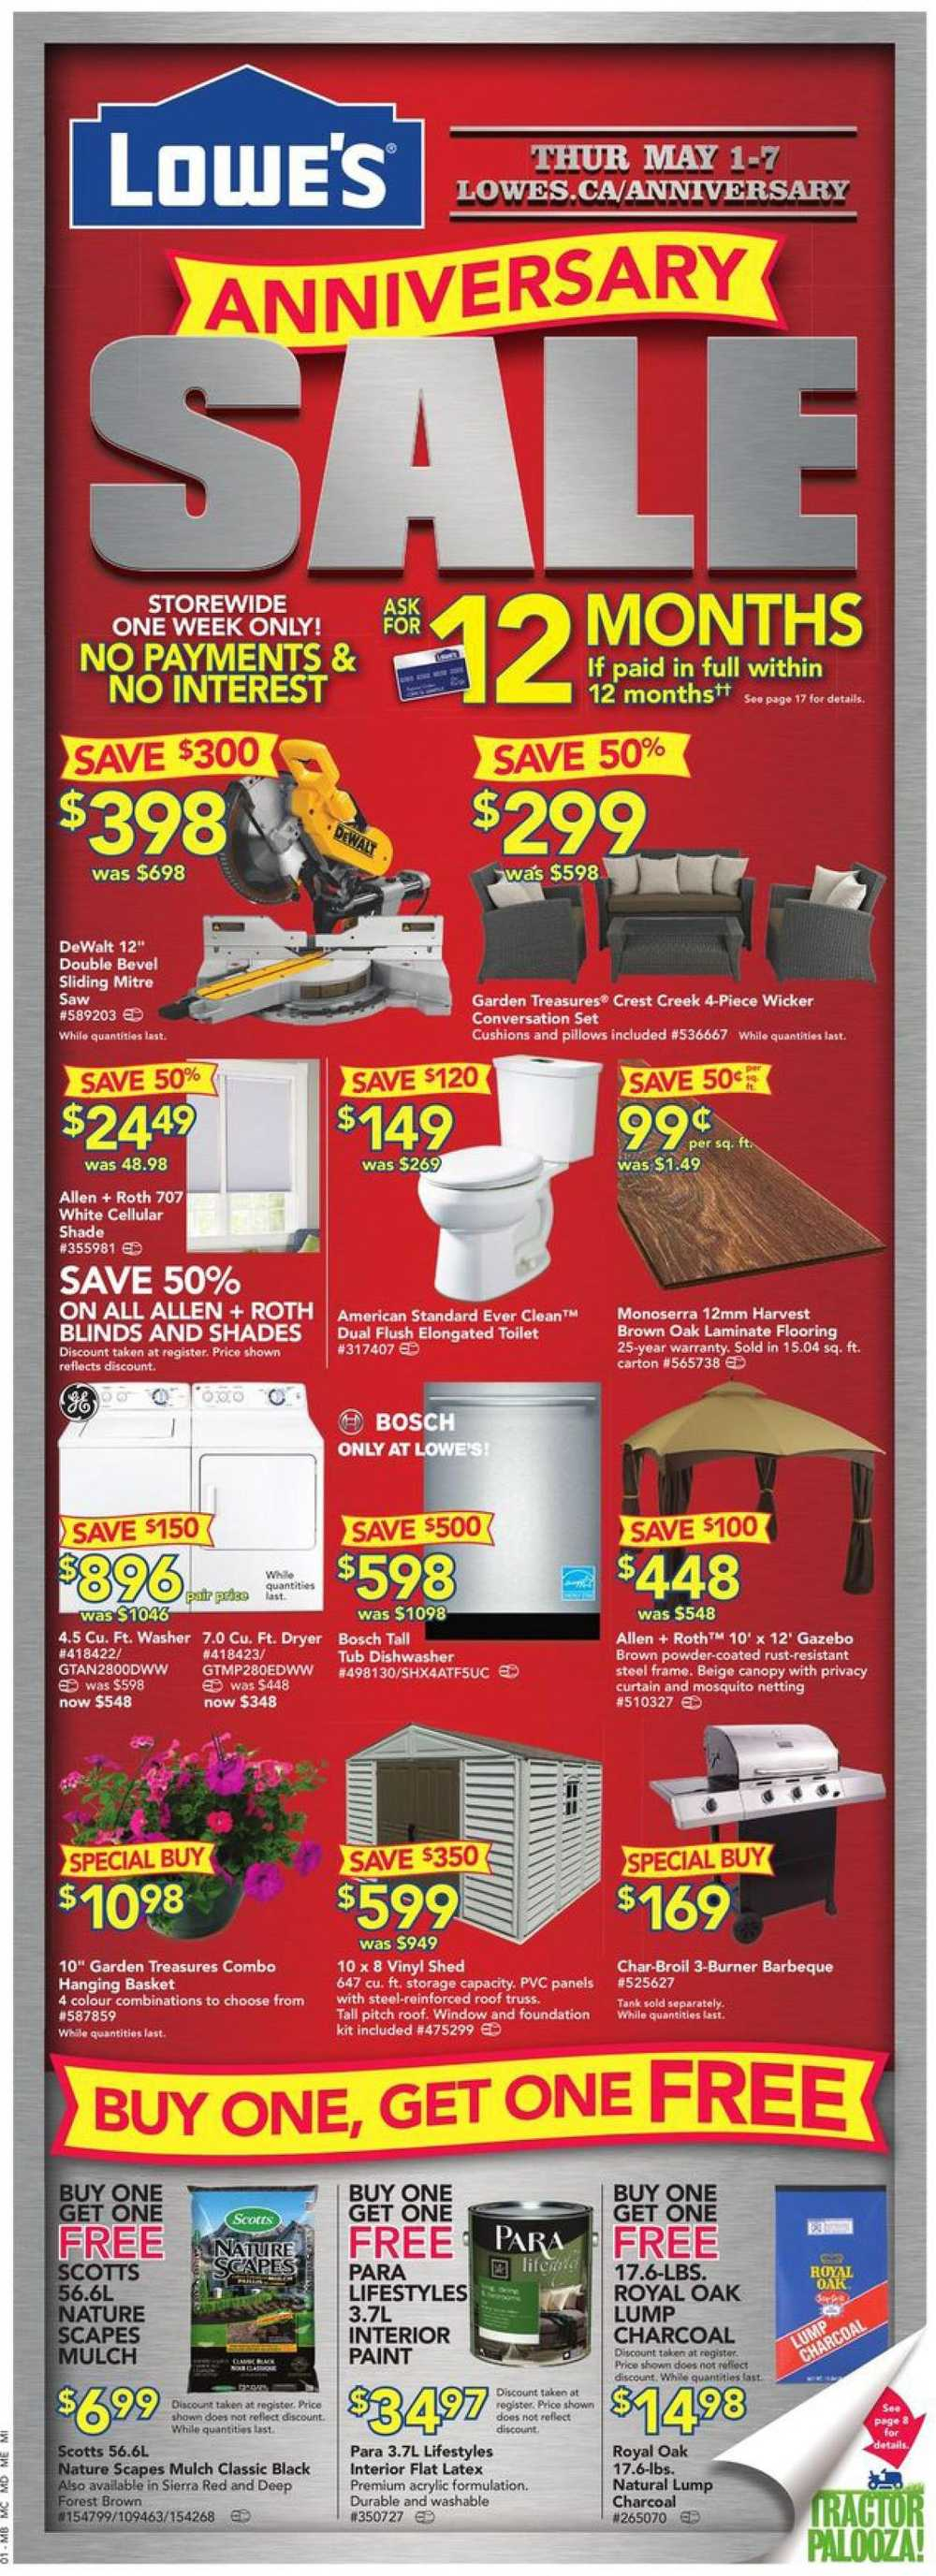 American Standard Toilets Lowes Wordens. Toto Toilets Lowes   Wordens net